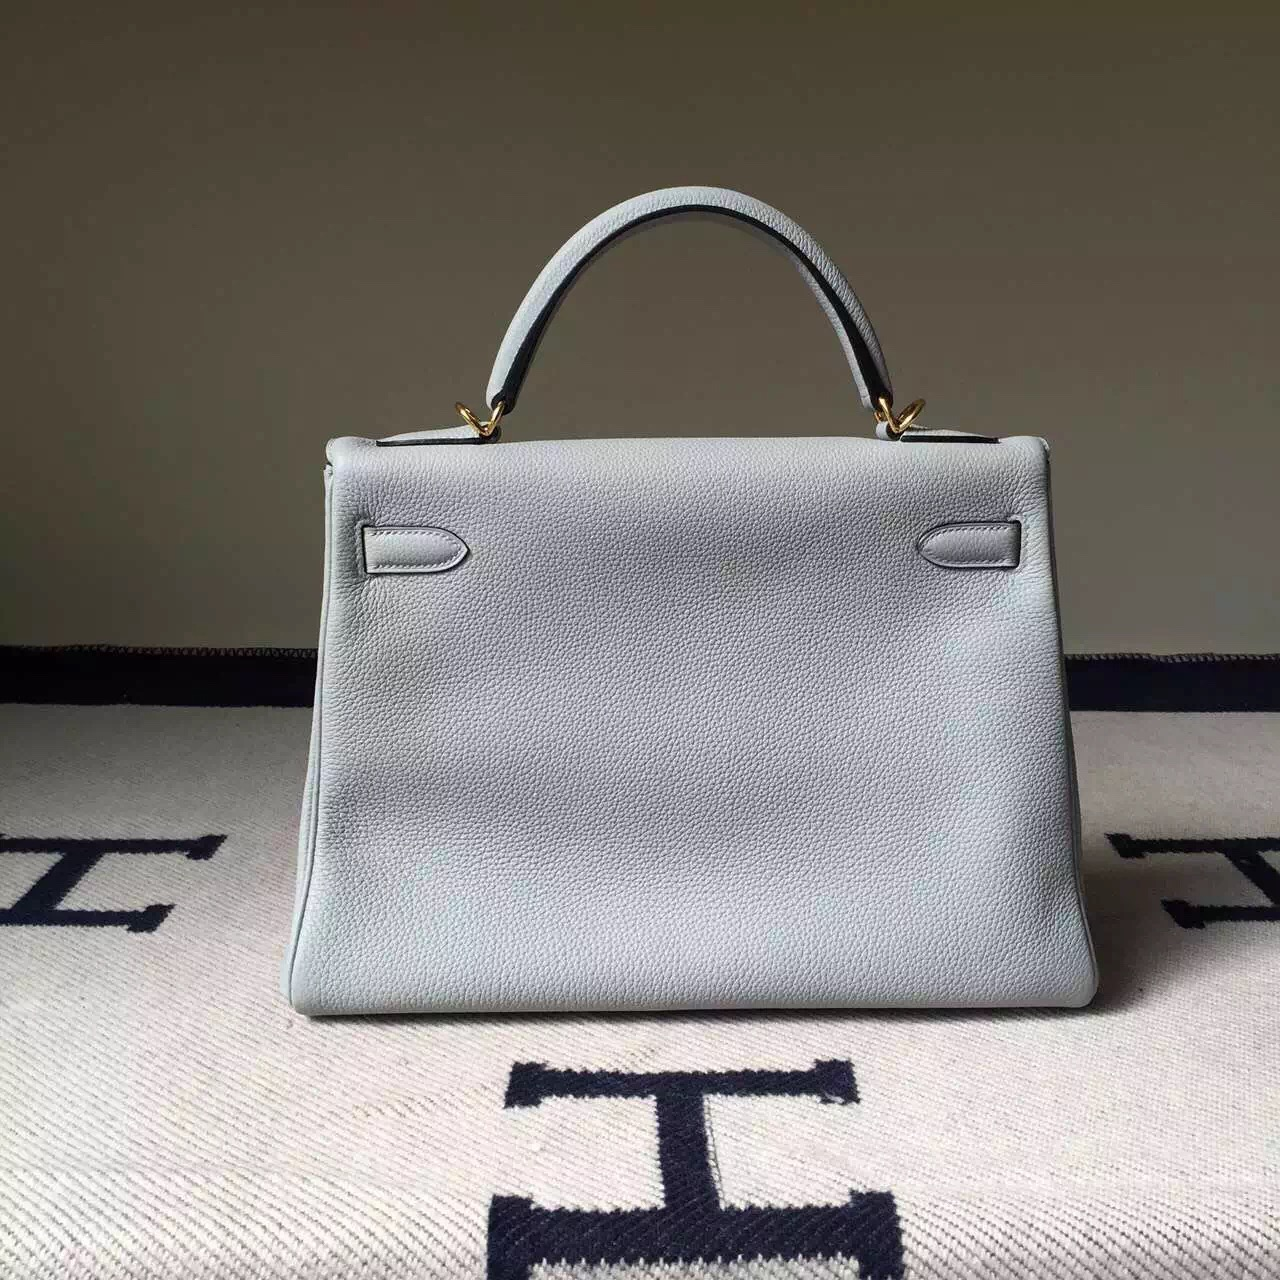 New Arrival Hermes Retourne Kelly Bag 32CM in 8U Blue Glacier Togo Leather